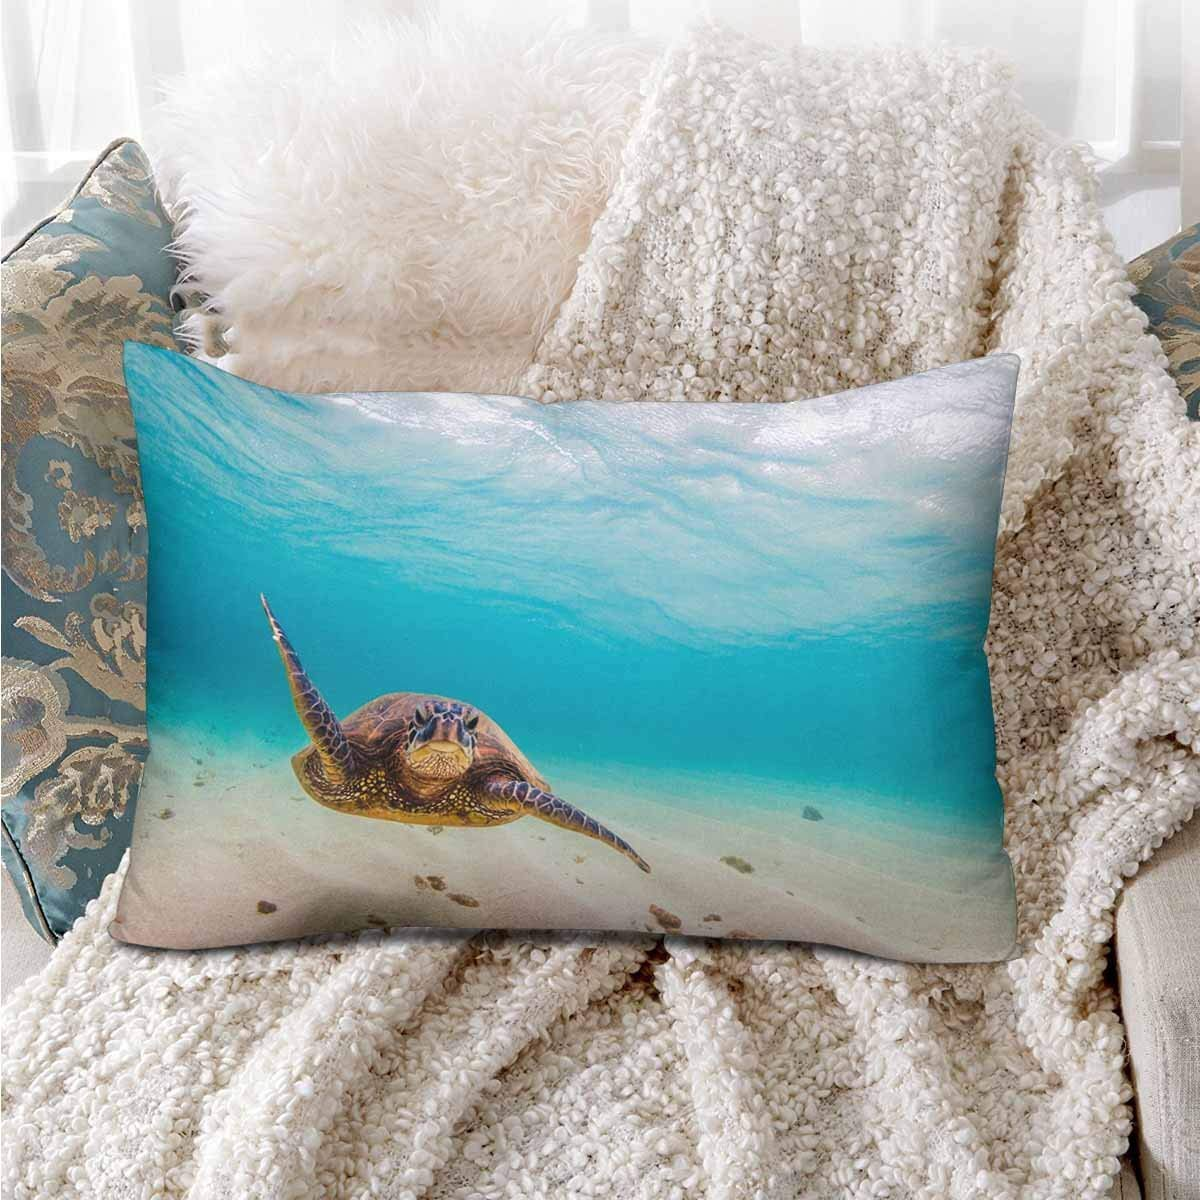 GCKG Hawaii Sea Turtle Fish Underwater Ocean Wave Beach Green Pillow Cases Pillowcase 20x30 inches - image 1 of 4